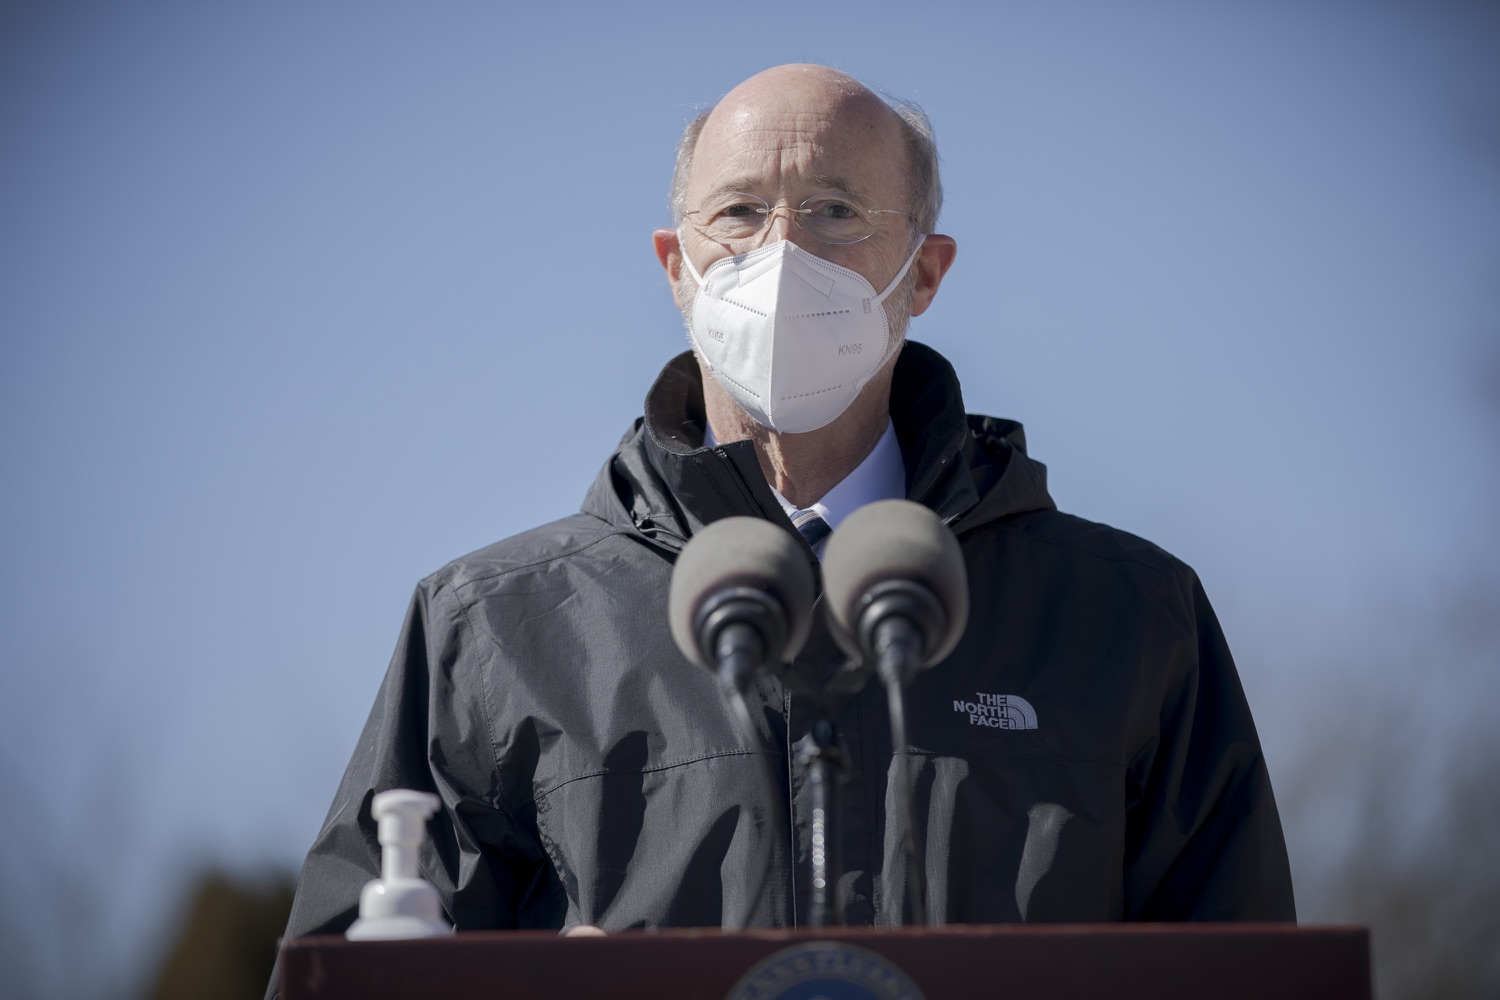 "<a href=""https://filesource.wostreaming.net/commonwealthofpa/photo/18560_gov_chirp_dz_07.jpg"" target=""_blank"">⇣ Download Photo<br></a>Pennsylvania Governor Tom Wolf answers questions from the press.  Governor Tom Wolf announced today that the hospitality industry will soon be able to apply for immediate relief through the COVID-19 Hospitality Industry Recovery Program (CHIRP), a new grant program established by the Wolf Administration to support local businesses in the hospitality industry that were affected by the COVID-19 pandemic. Harrisburg, PA  March 2, 2021. .."